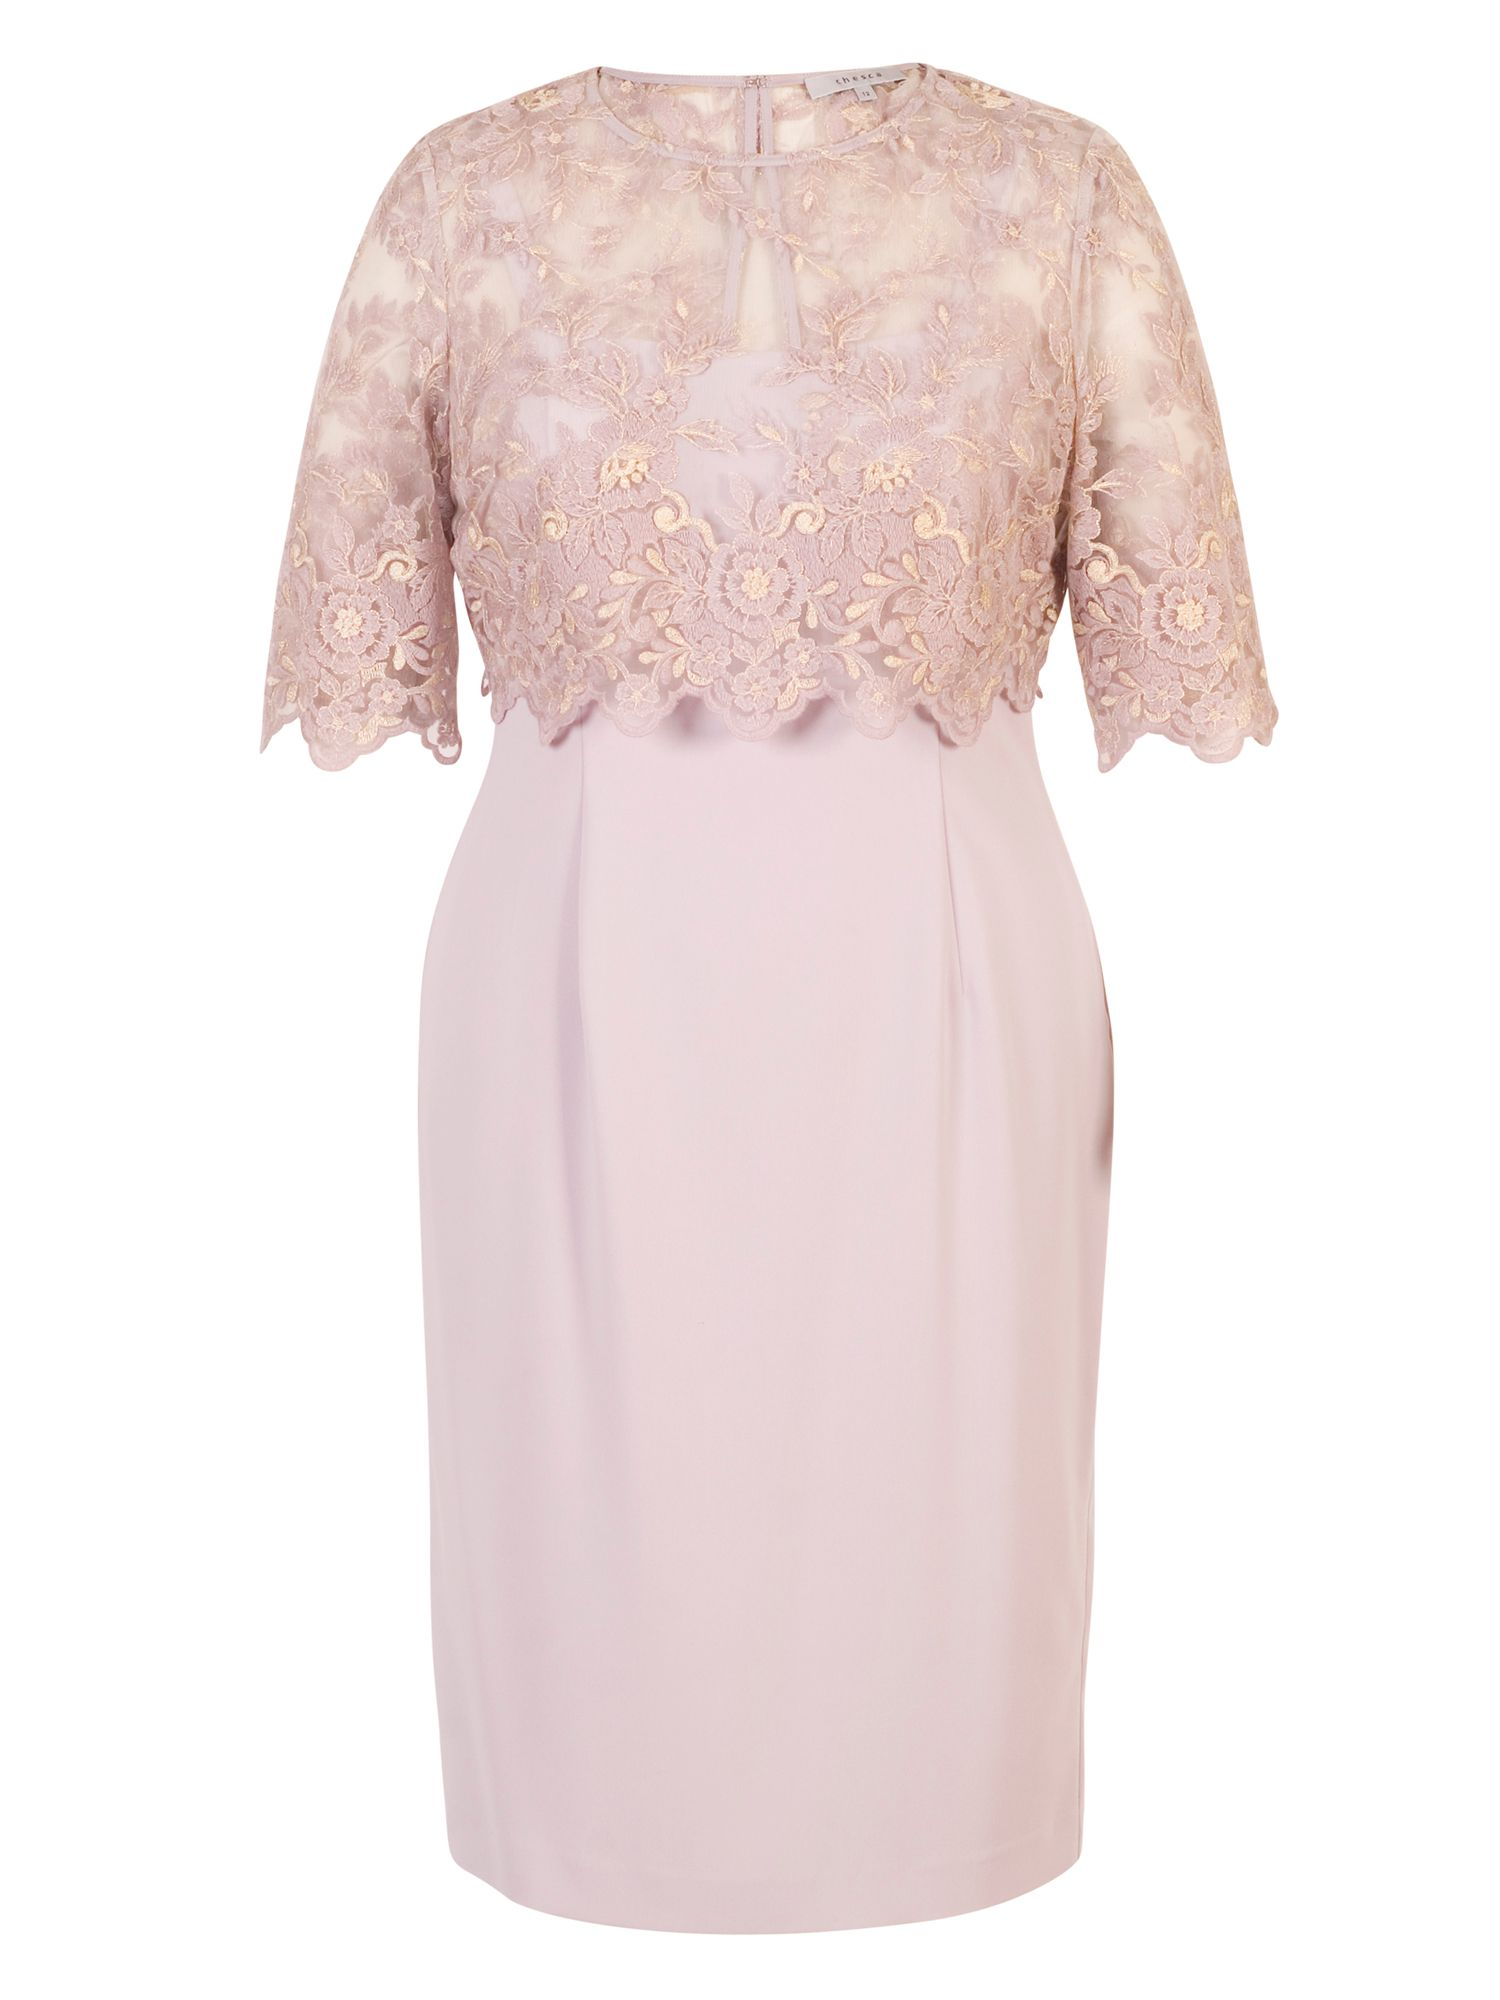 Chesca Crepe Shift Dress with Embroidered Top, Lilac